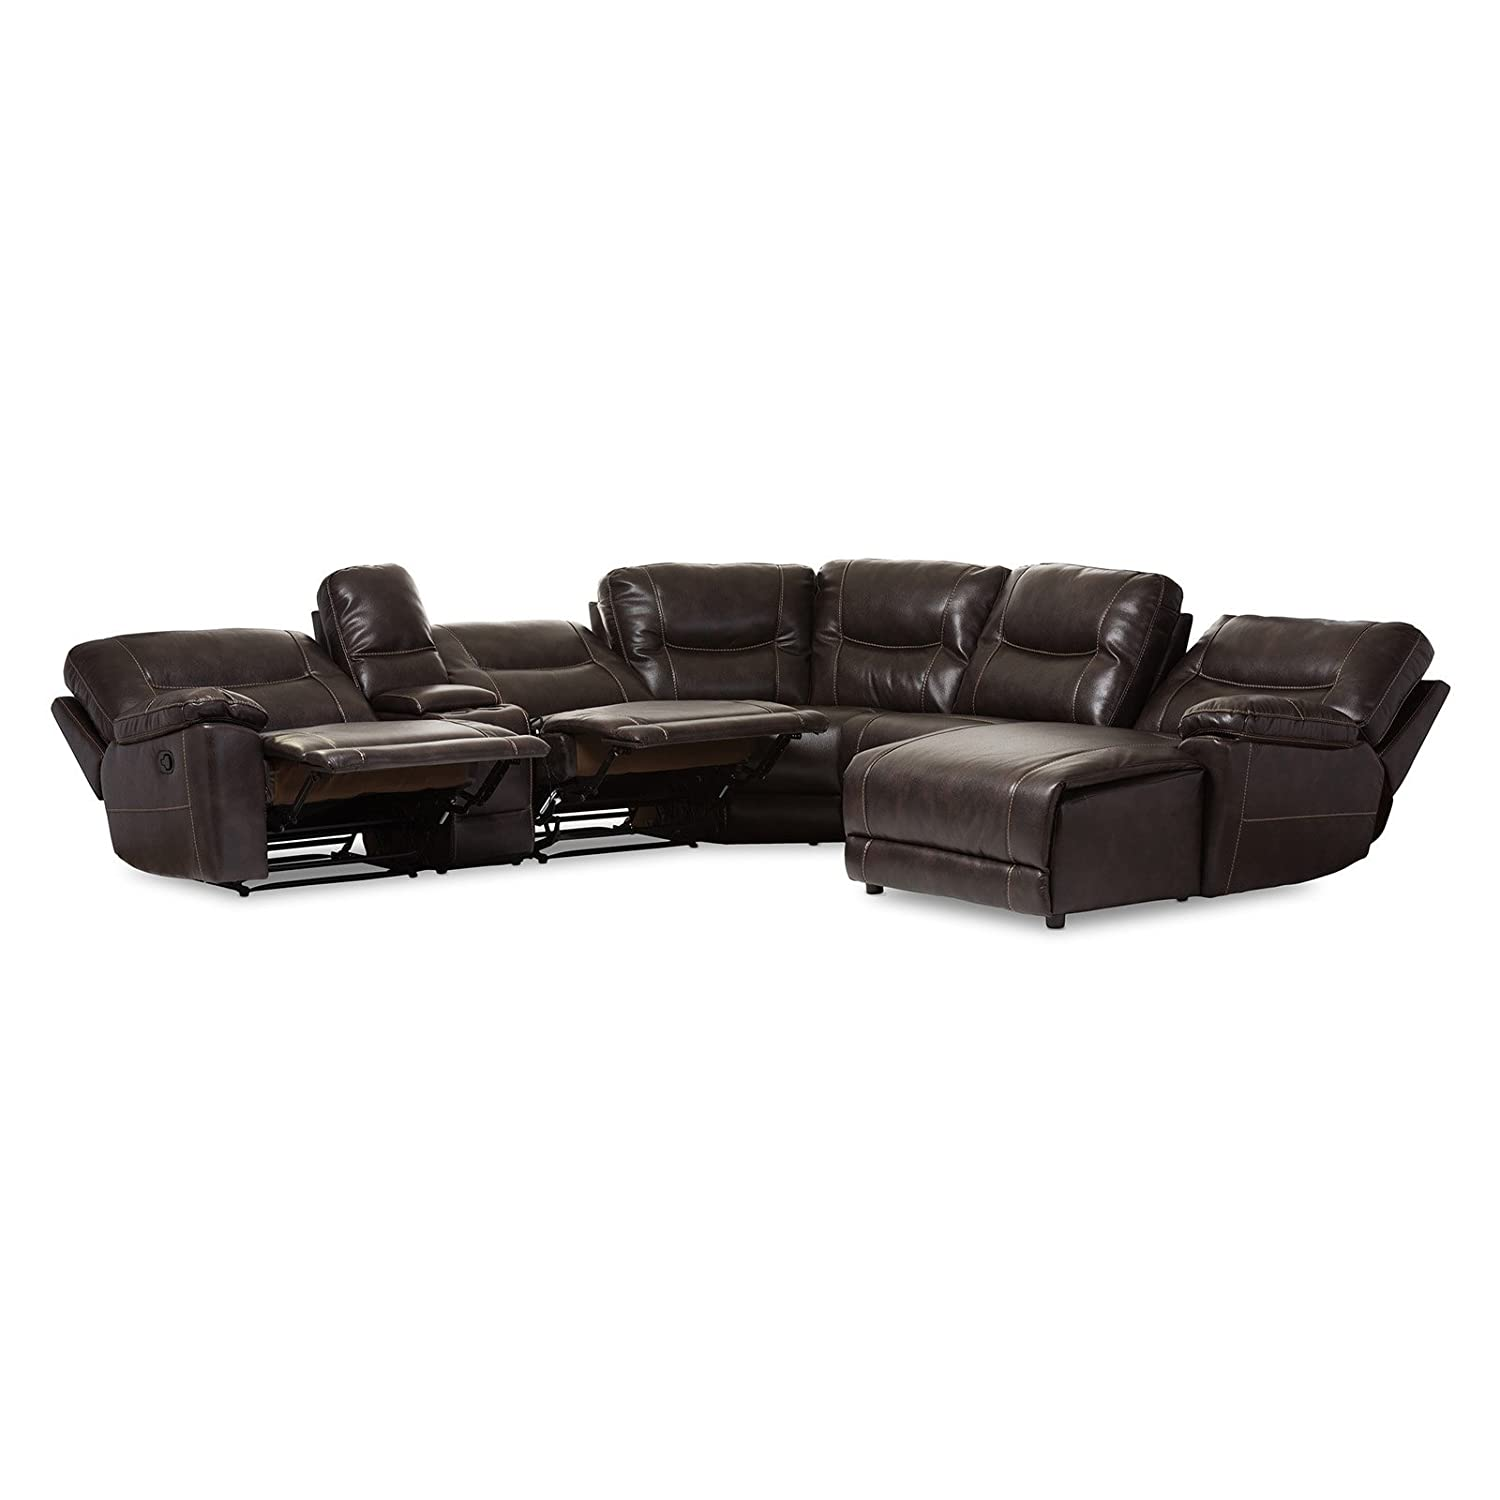 Amazon Baxton Studio Mistral 6 Piece Reclining Sectional in